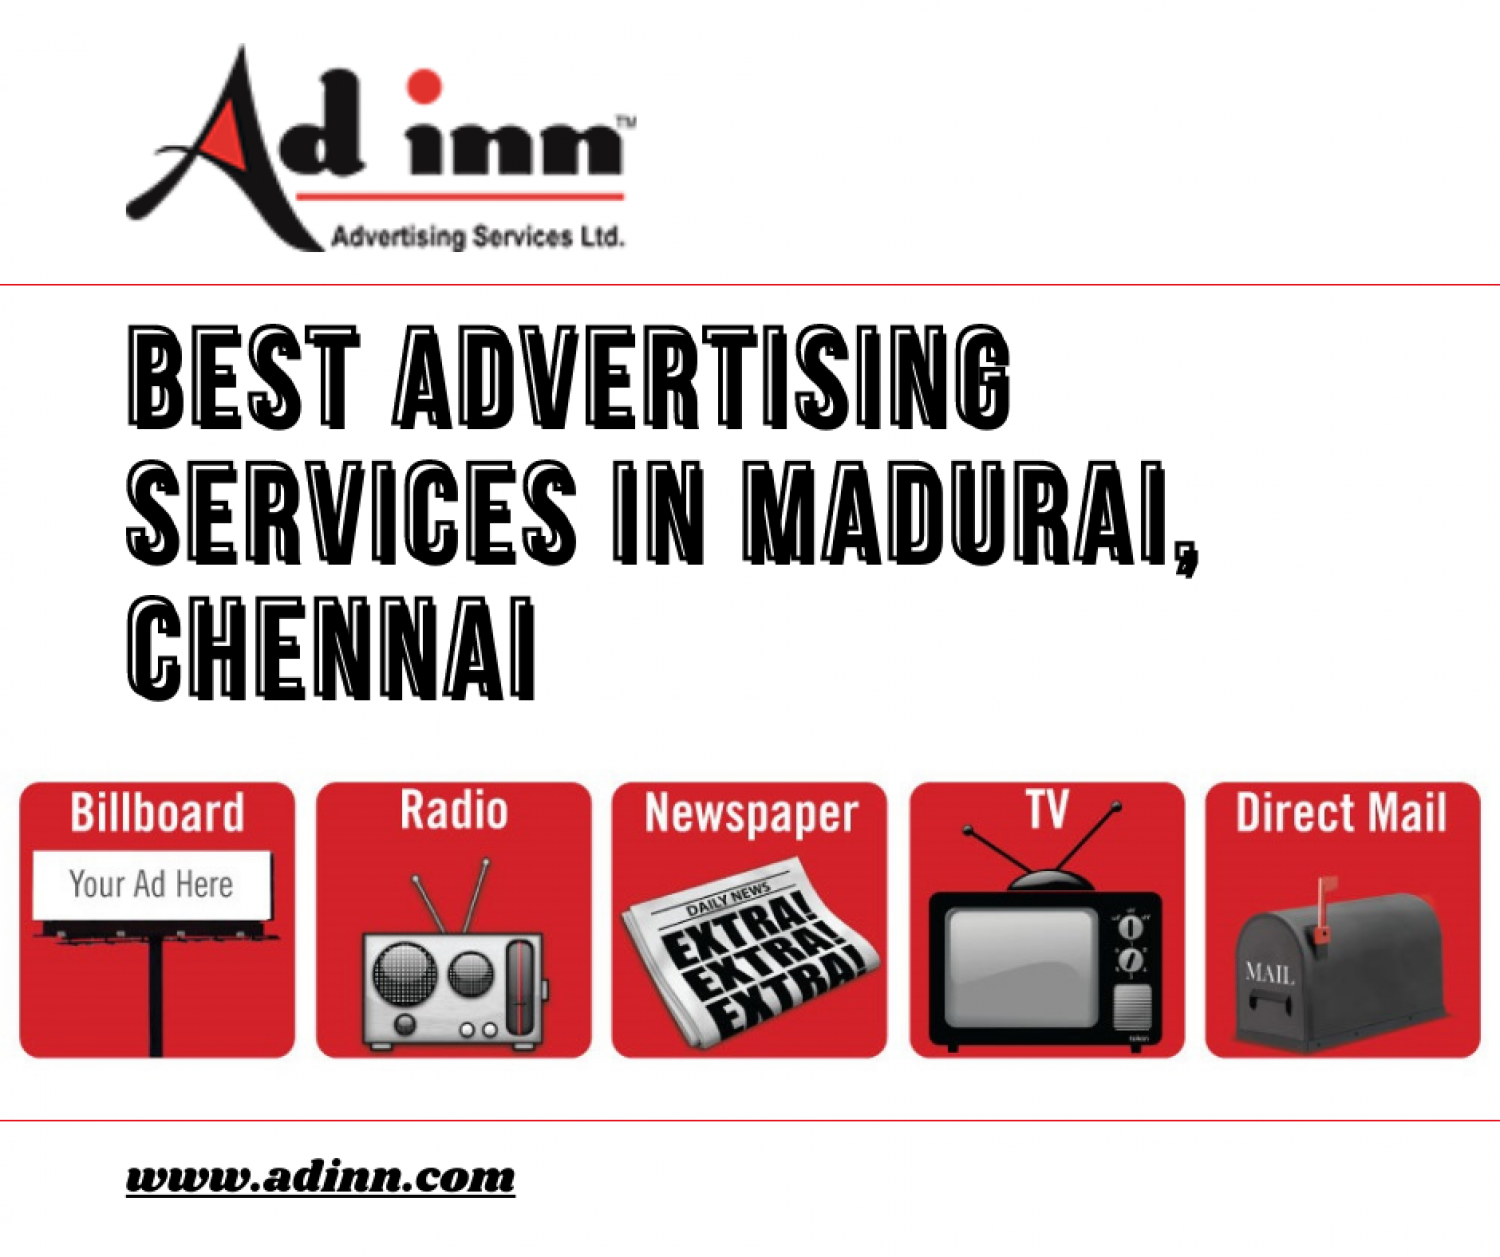 Best Advertising Services in Madurai, Chennai Infographic